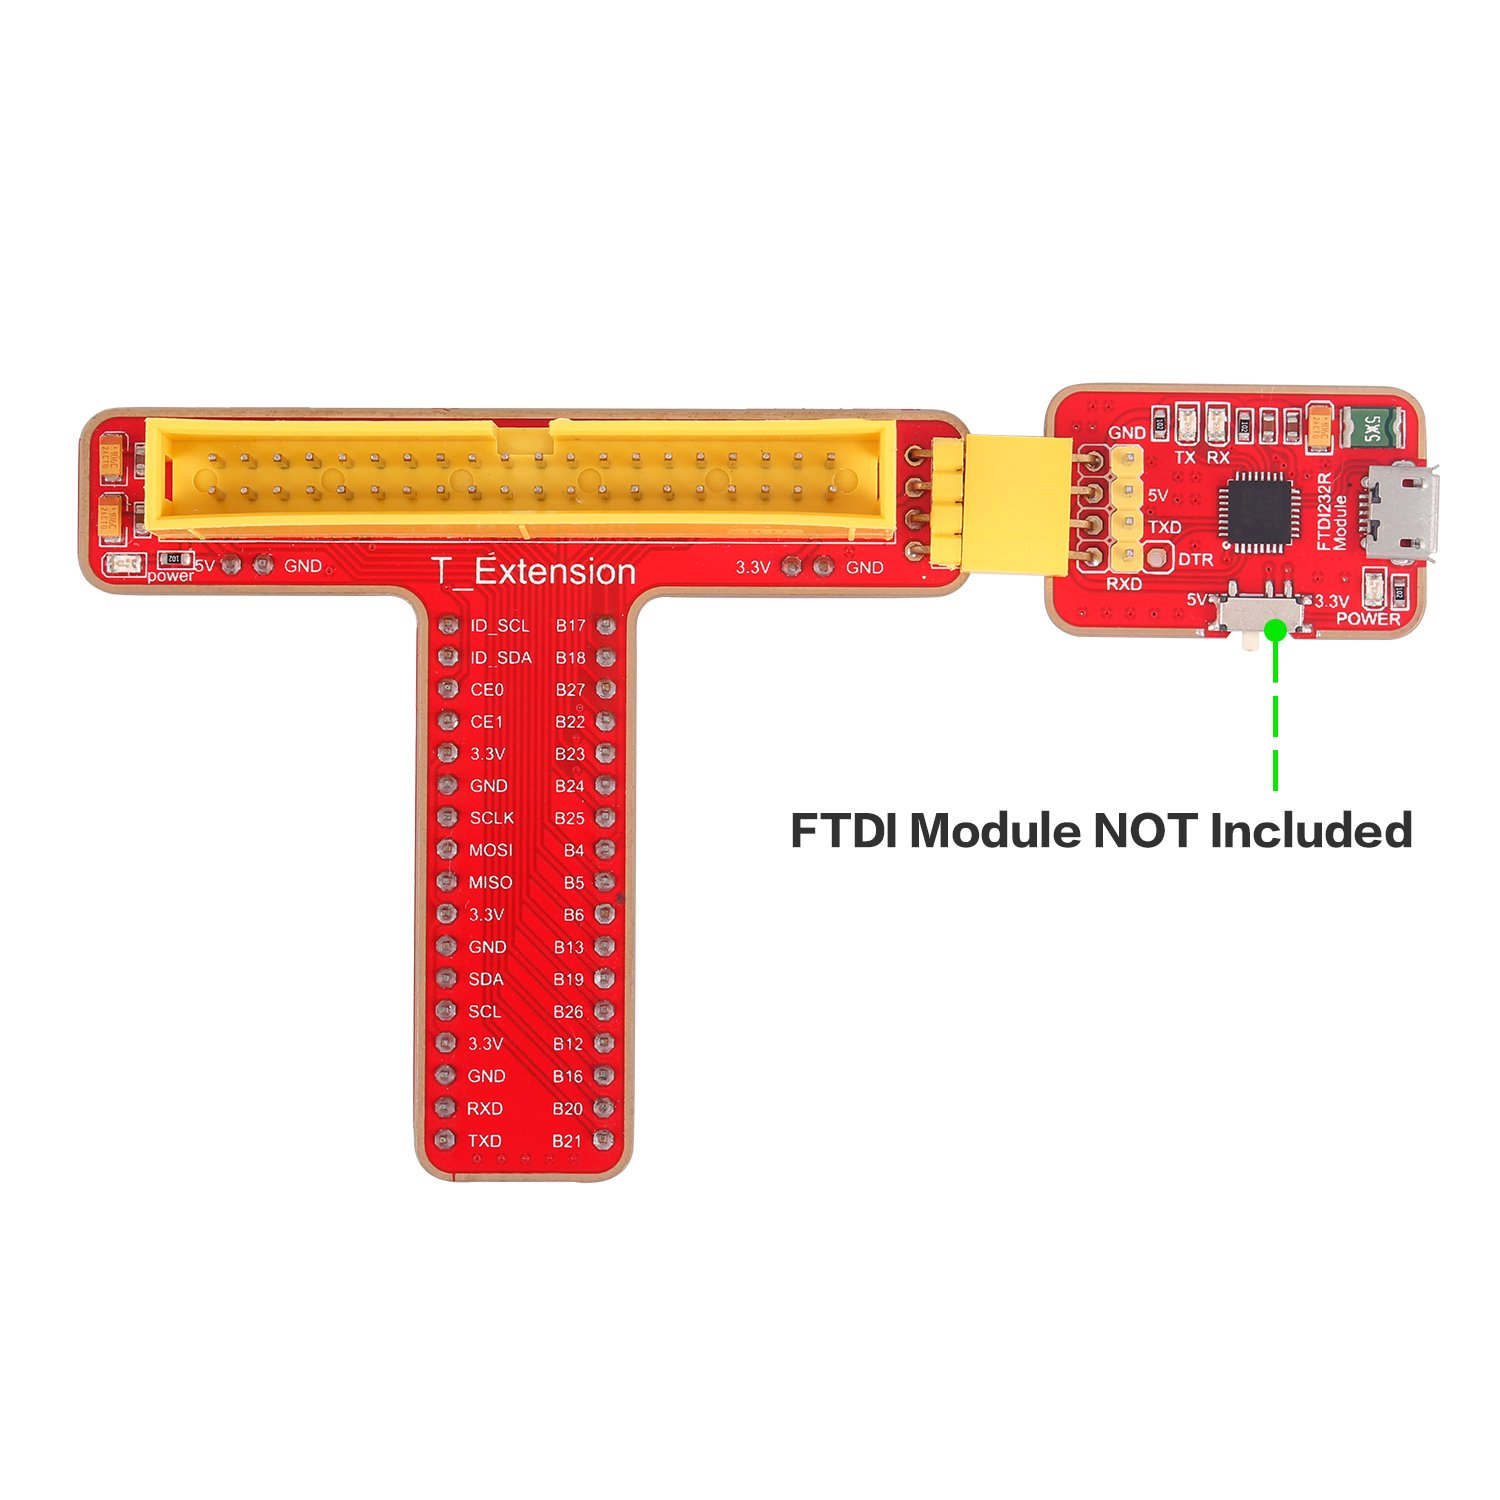 Sunfounder Gpio Extension Board T Shape Cobbler Breakout For Wiringpi Odroid C1 Raspberry Pi 3 2 Model B Rpi 1 With 40 Pins Ribbon Cable Toys